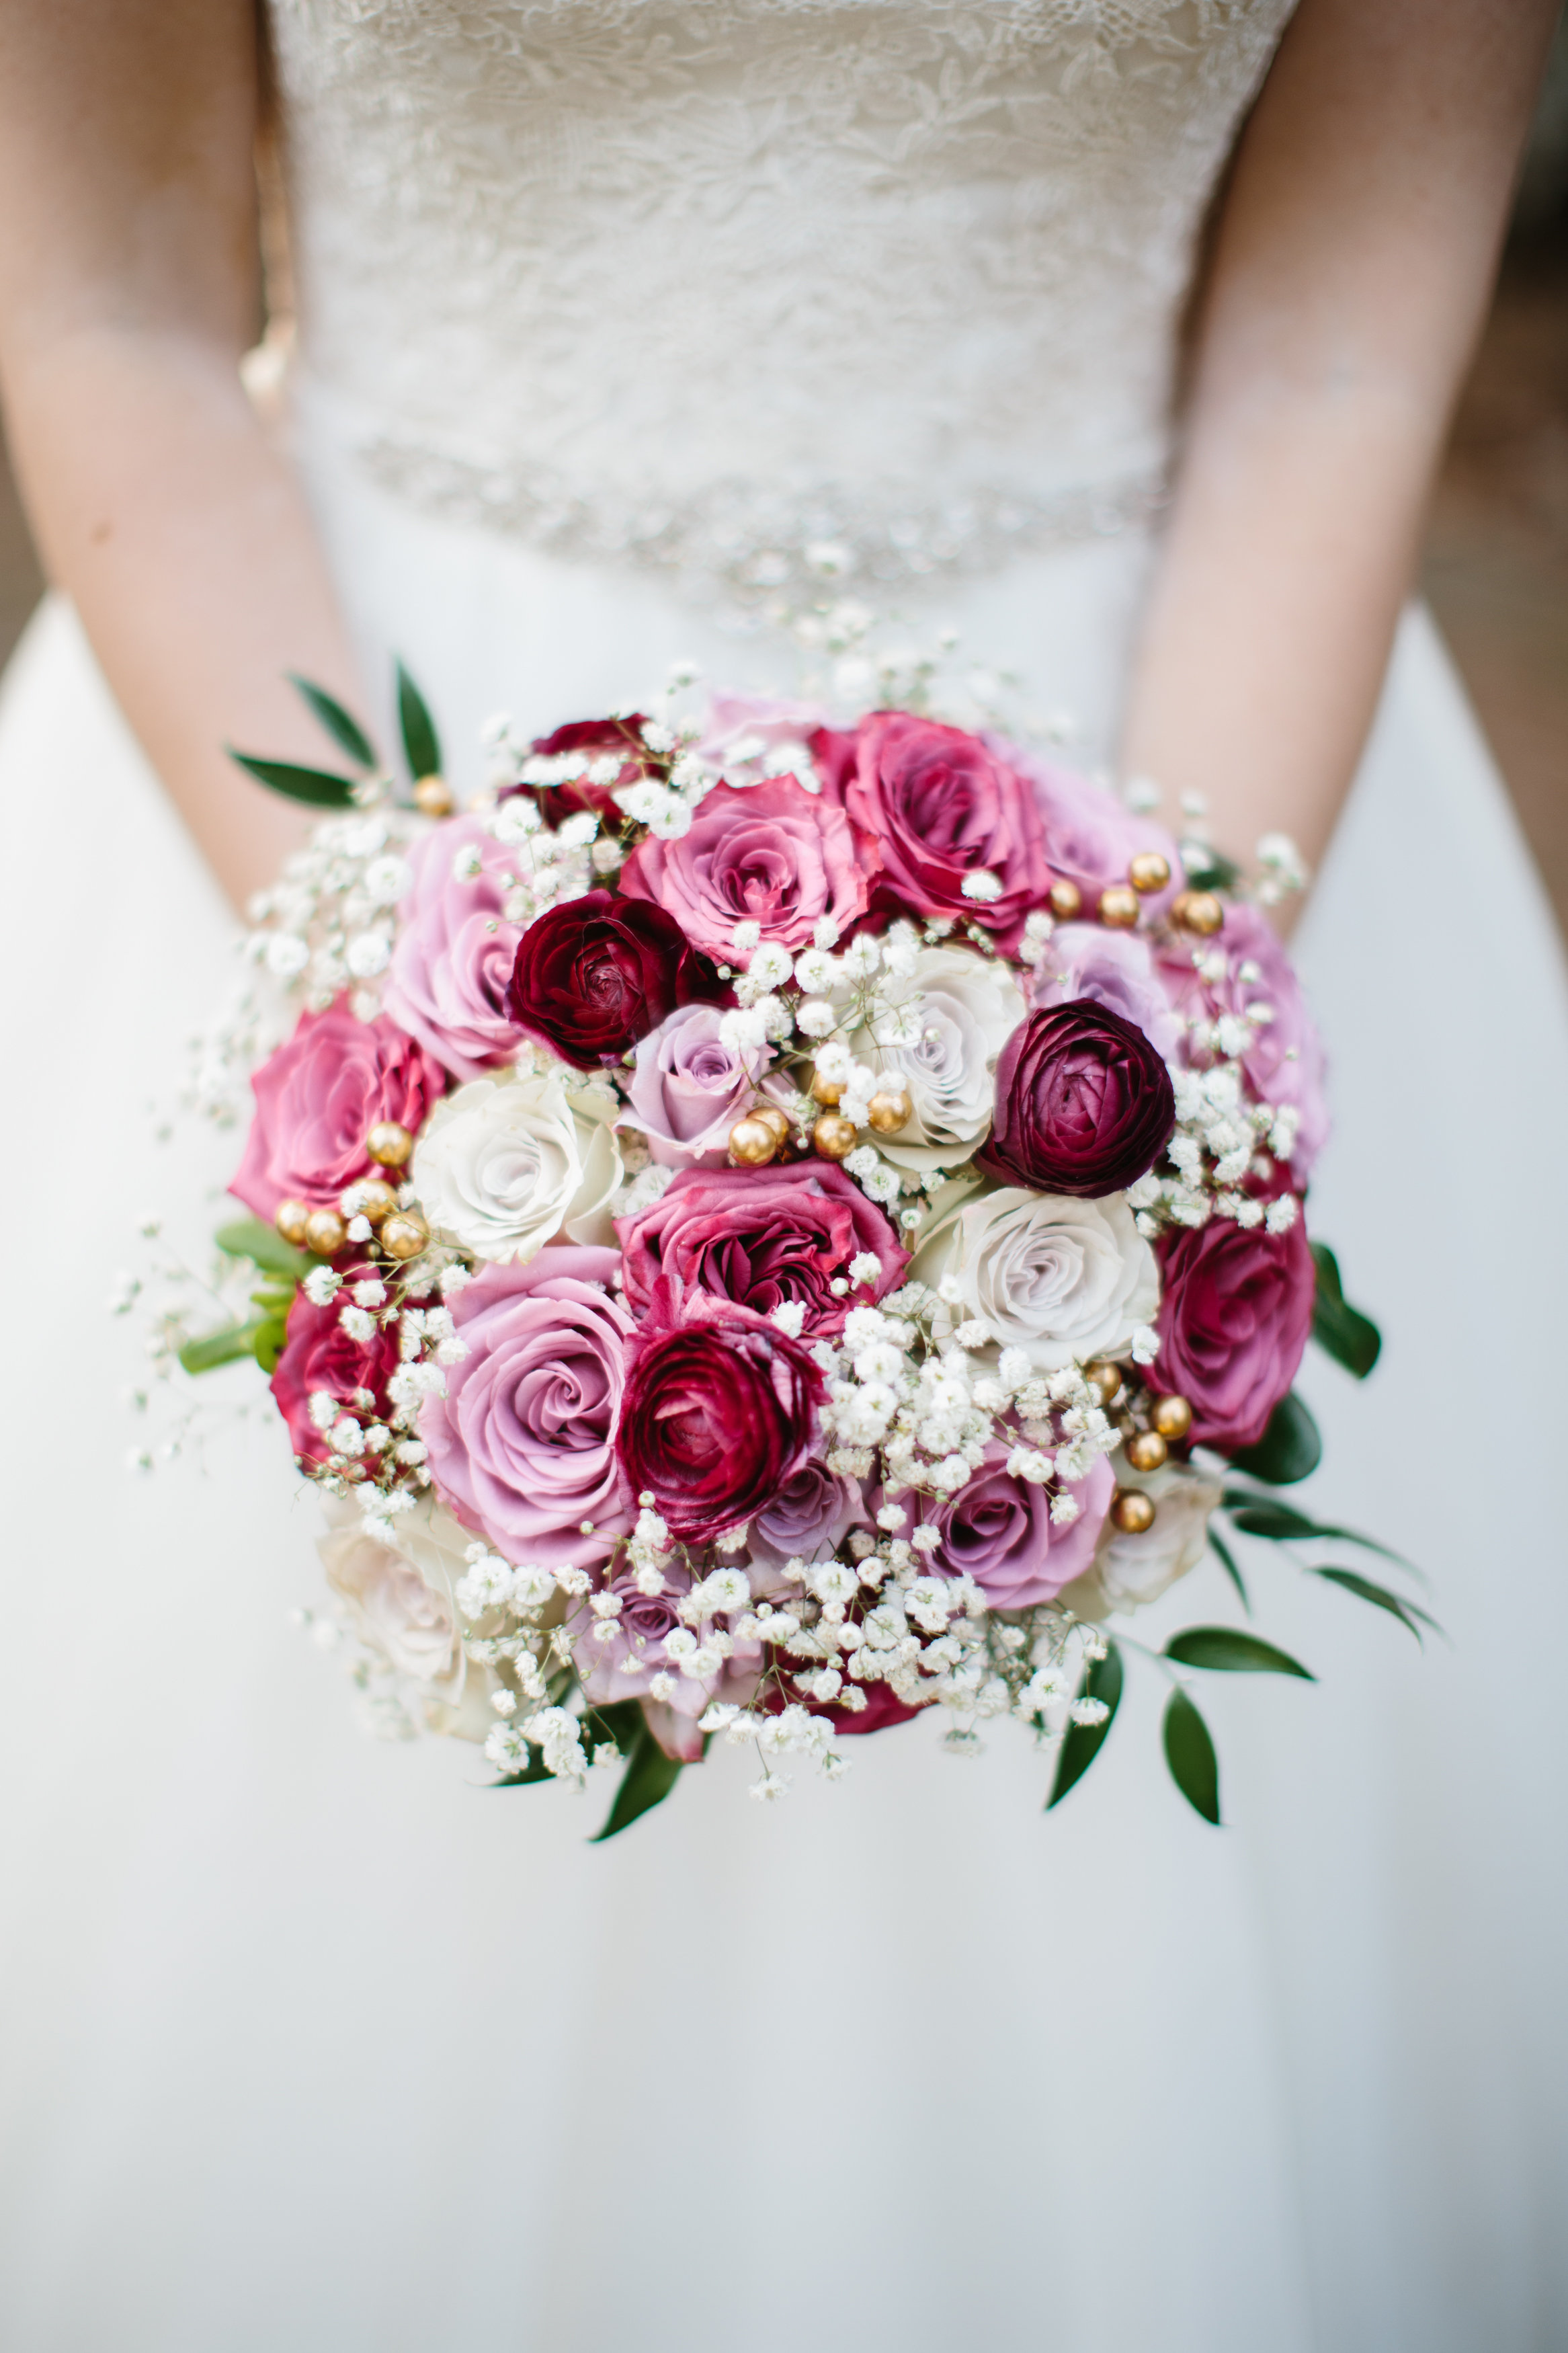 Traditional bridal bouquet by Abbotsford Wedding Florist Floral Design by Lili